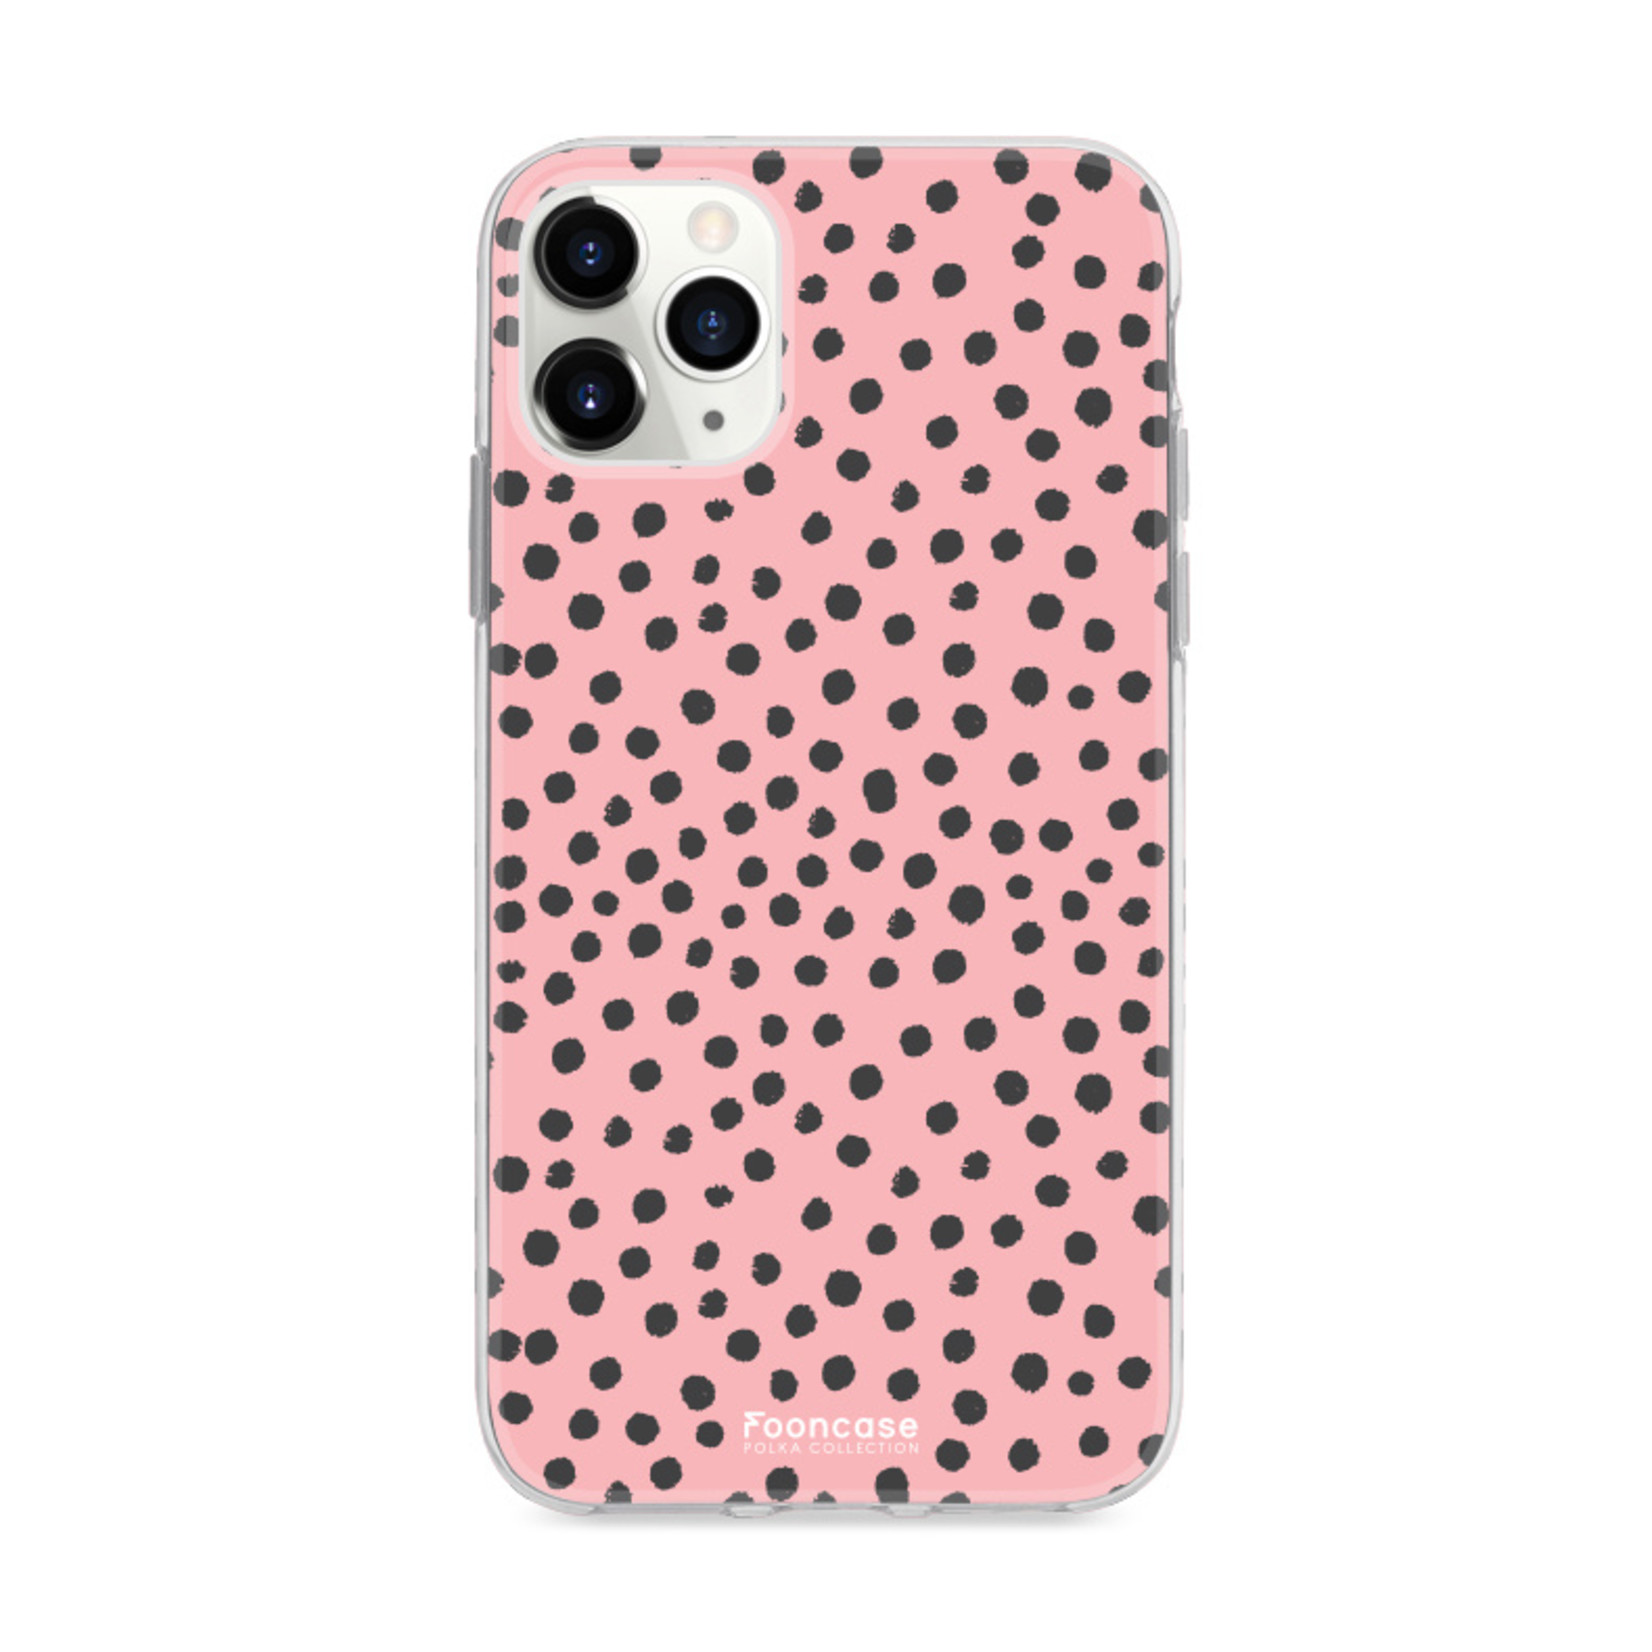 FOONCASE iPhone 11 Pro Max hoesje TPU Soft Case - Back Cover - POLKA COLLECTION / Stipjes / Stippen / Roze